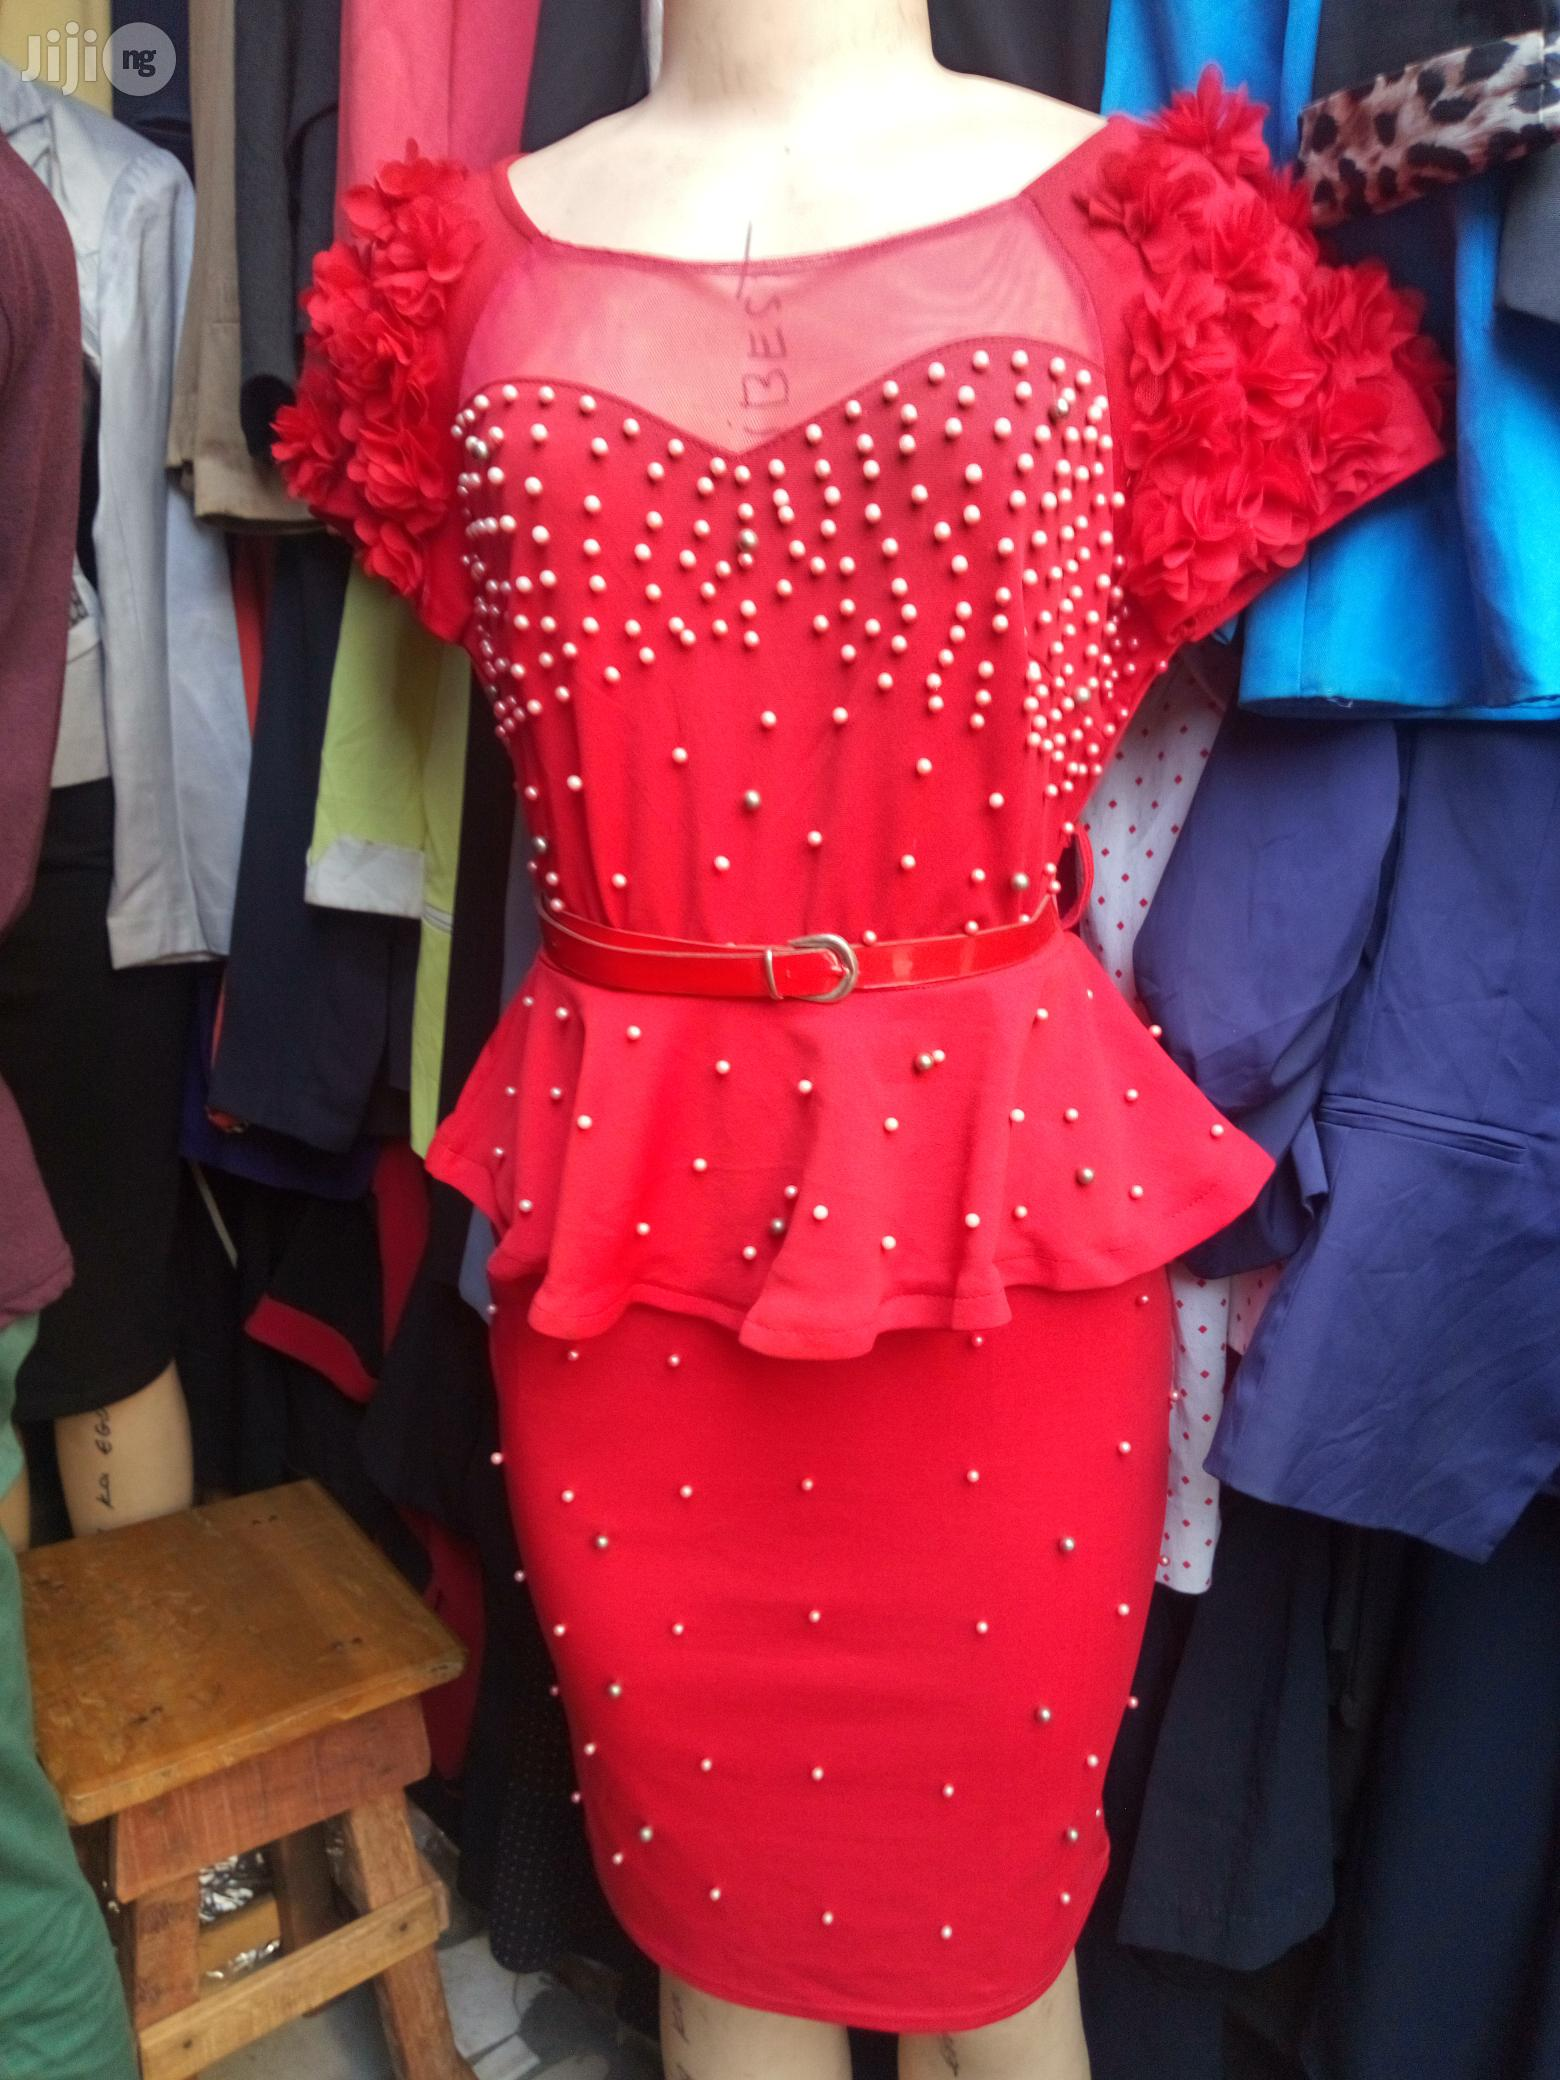 Fancy Dress / Gown With Beads for Occasions | Clothing for sale in Ikeja, Lagos State, Nigeria